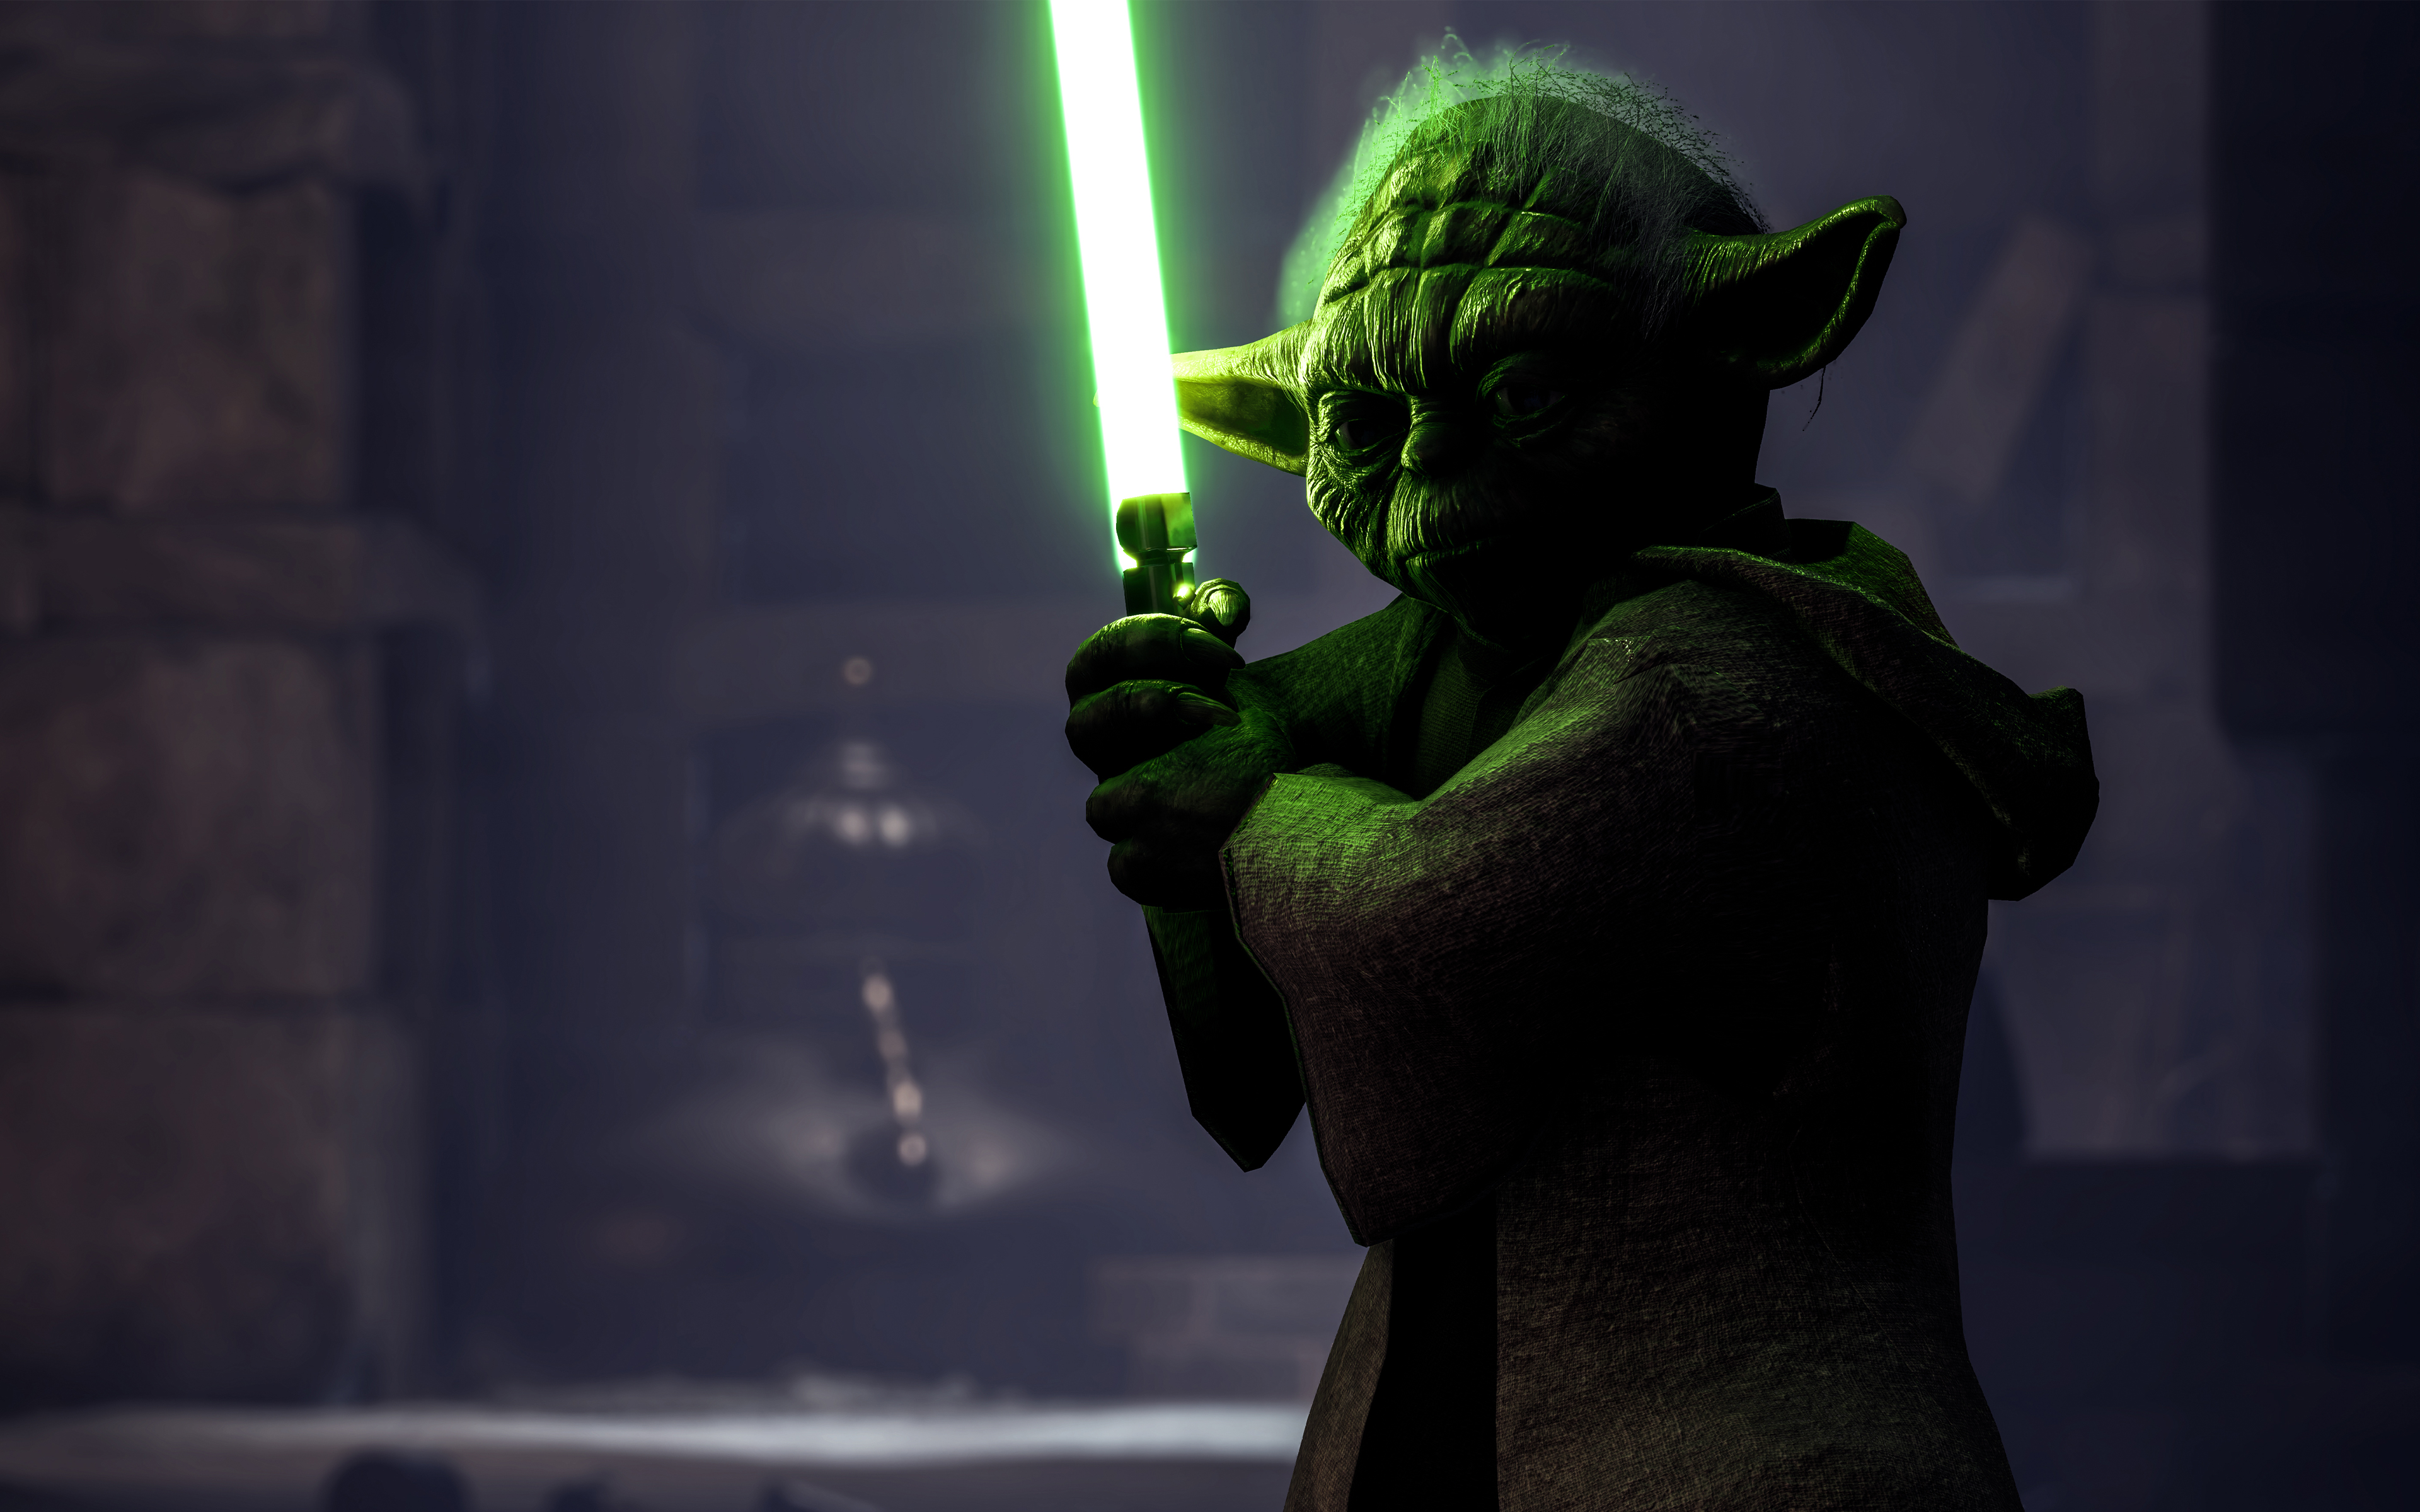 Star Wars Yoda Hd 3840x2400 Wallpaper Teahub Io